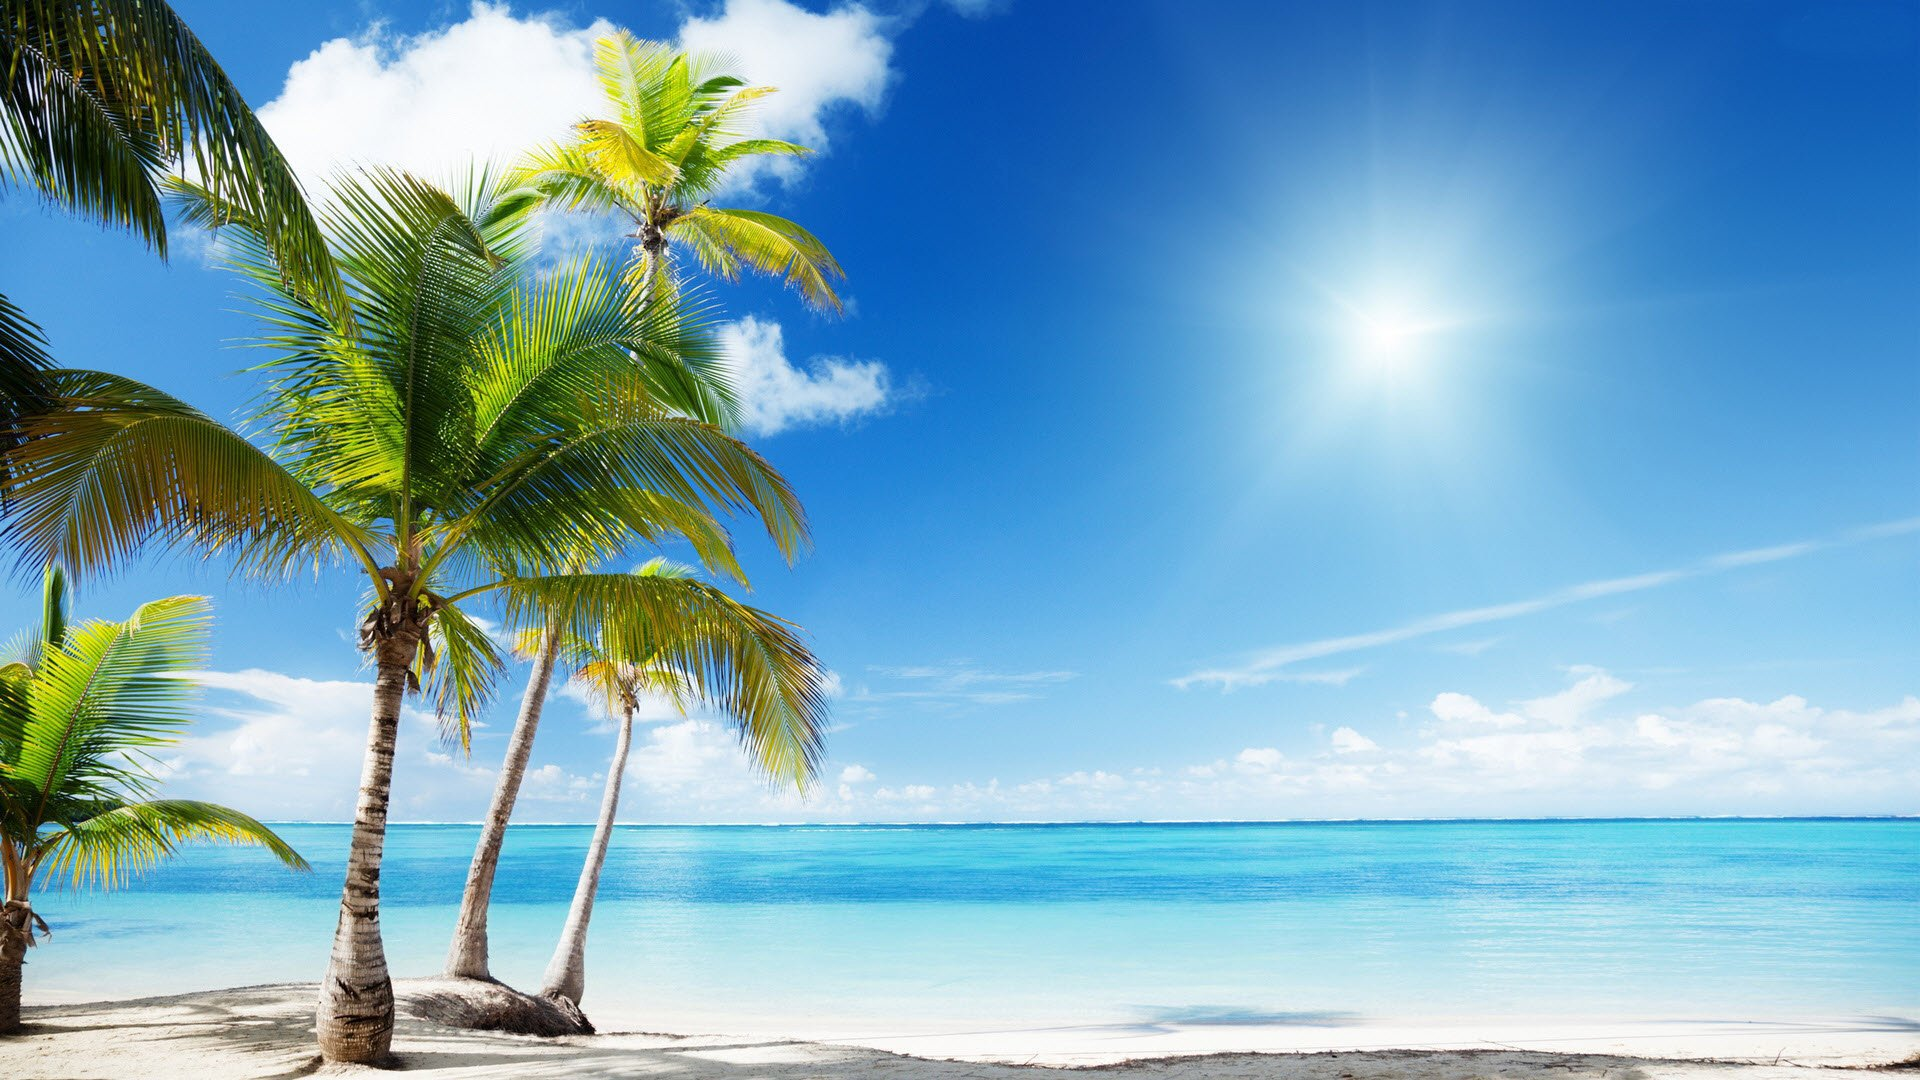 Sunny Tropical Beach Wallpapers 1920x1080